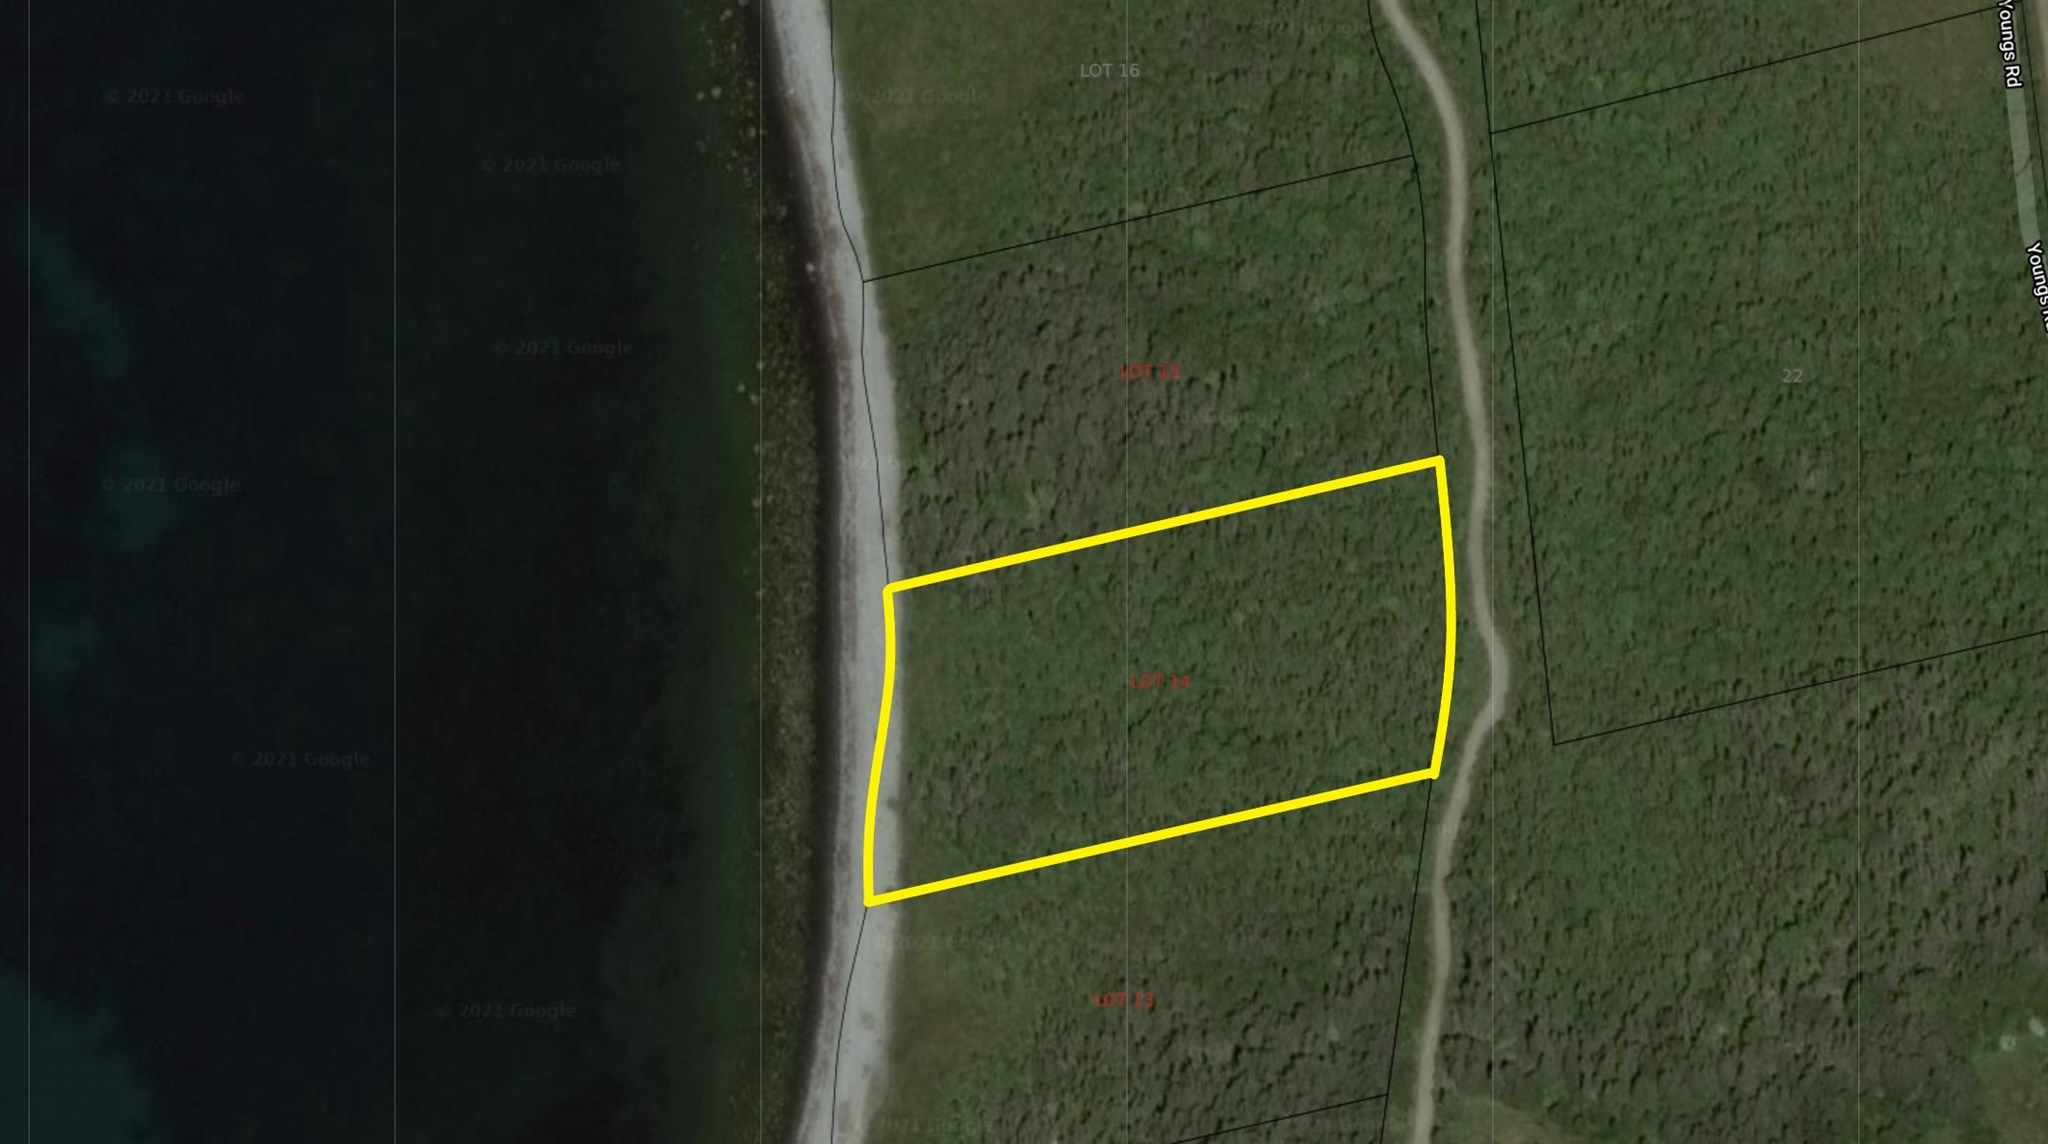 Main Photo: Lot 14 Youngs Road in East Green Harbour: 407-Shelburne County Vacant Land for sale (South Shore)  : MLS®# 202105635